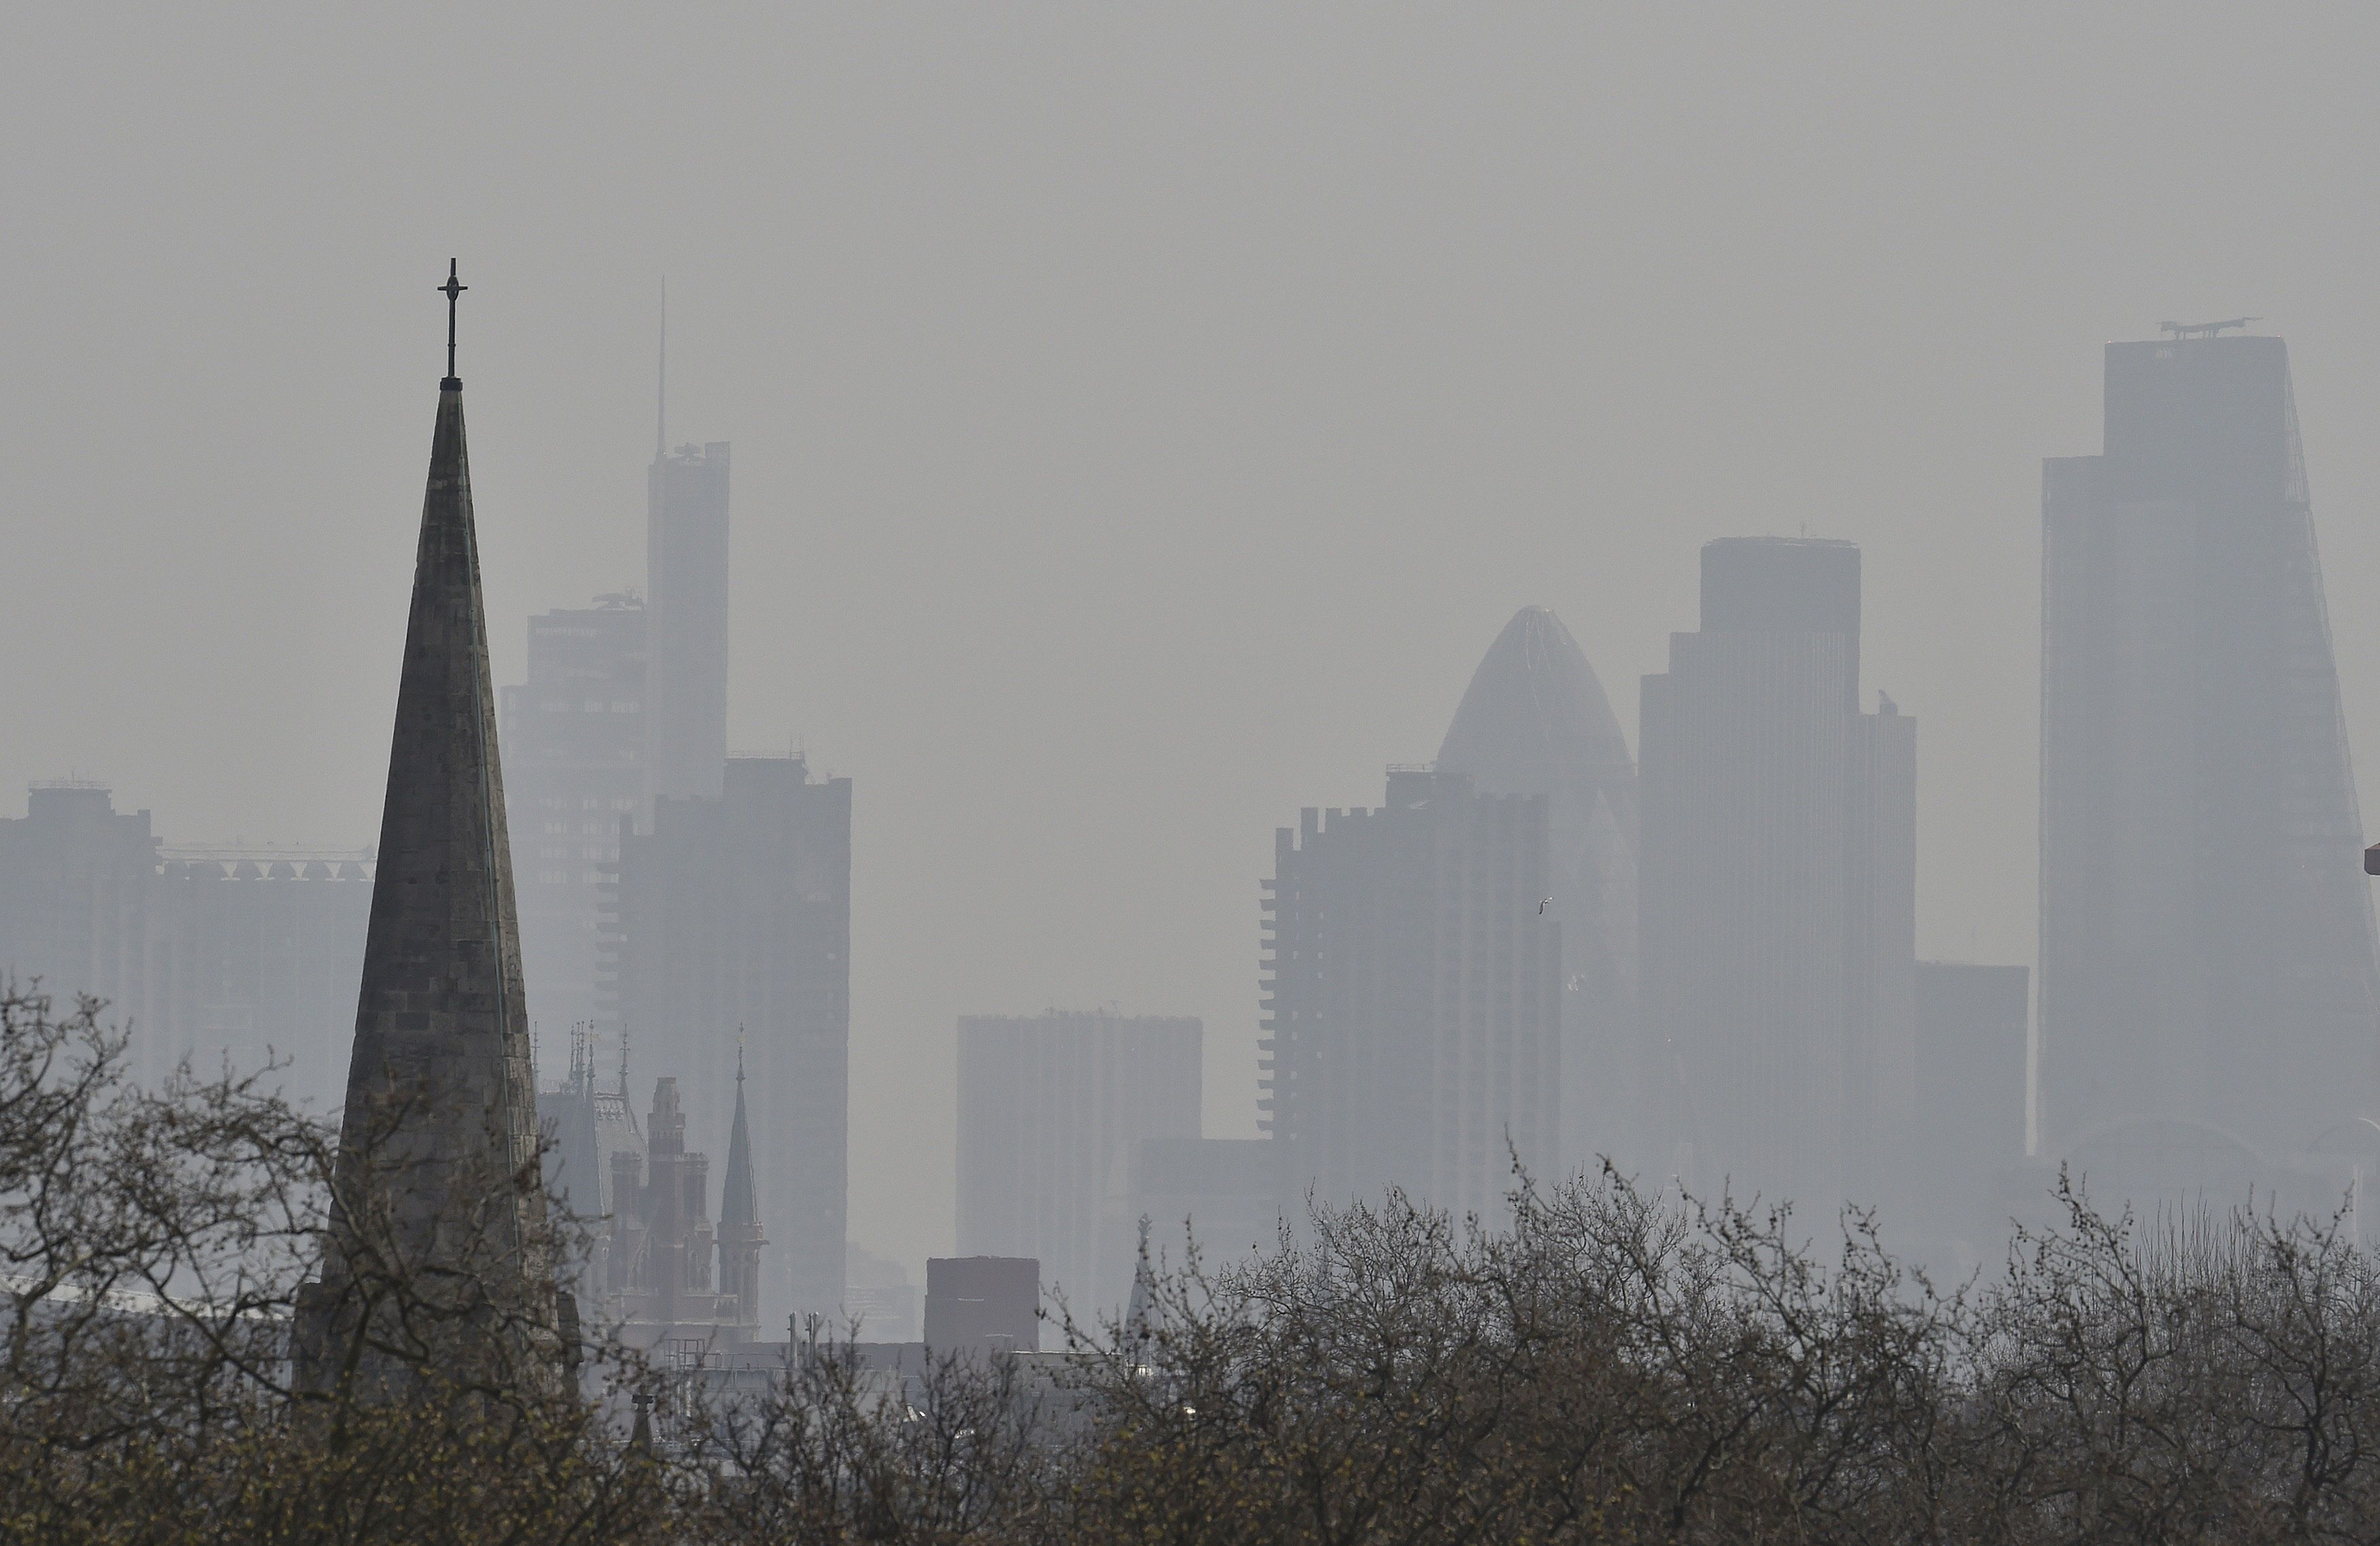 The City of London financial district is seen from Primrose Hill as high air pollution obscures the skyline...